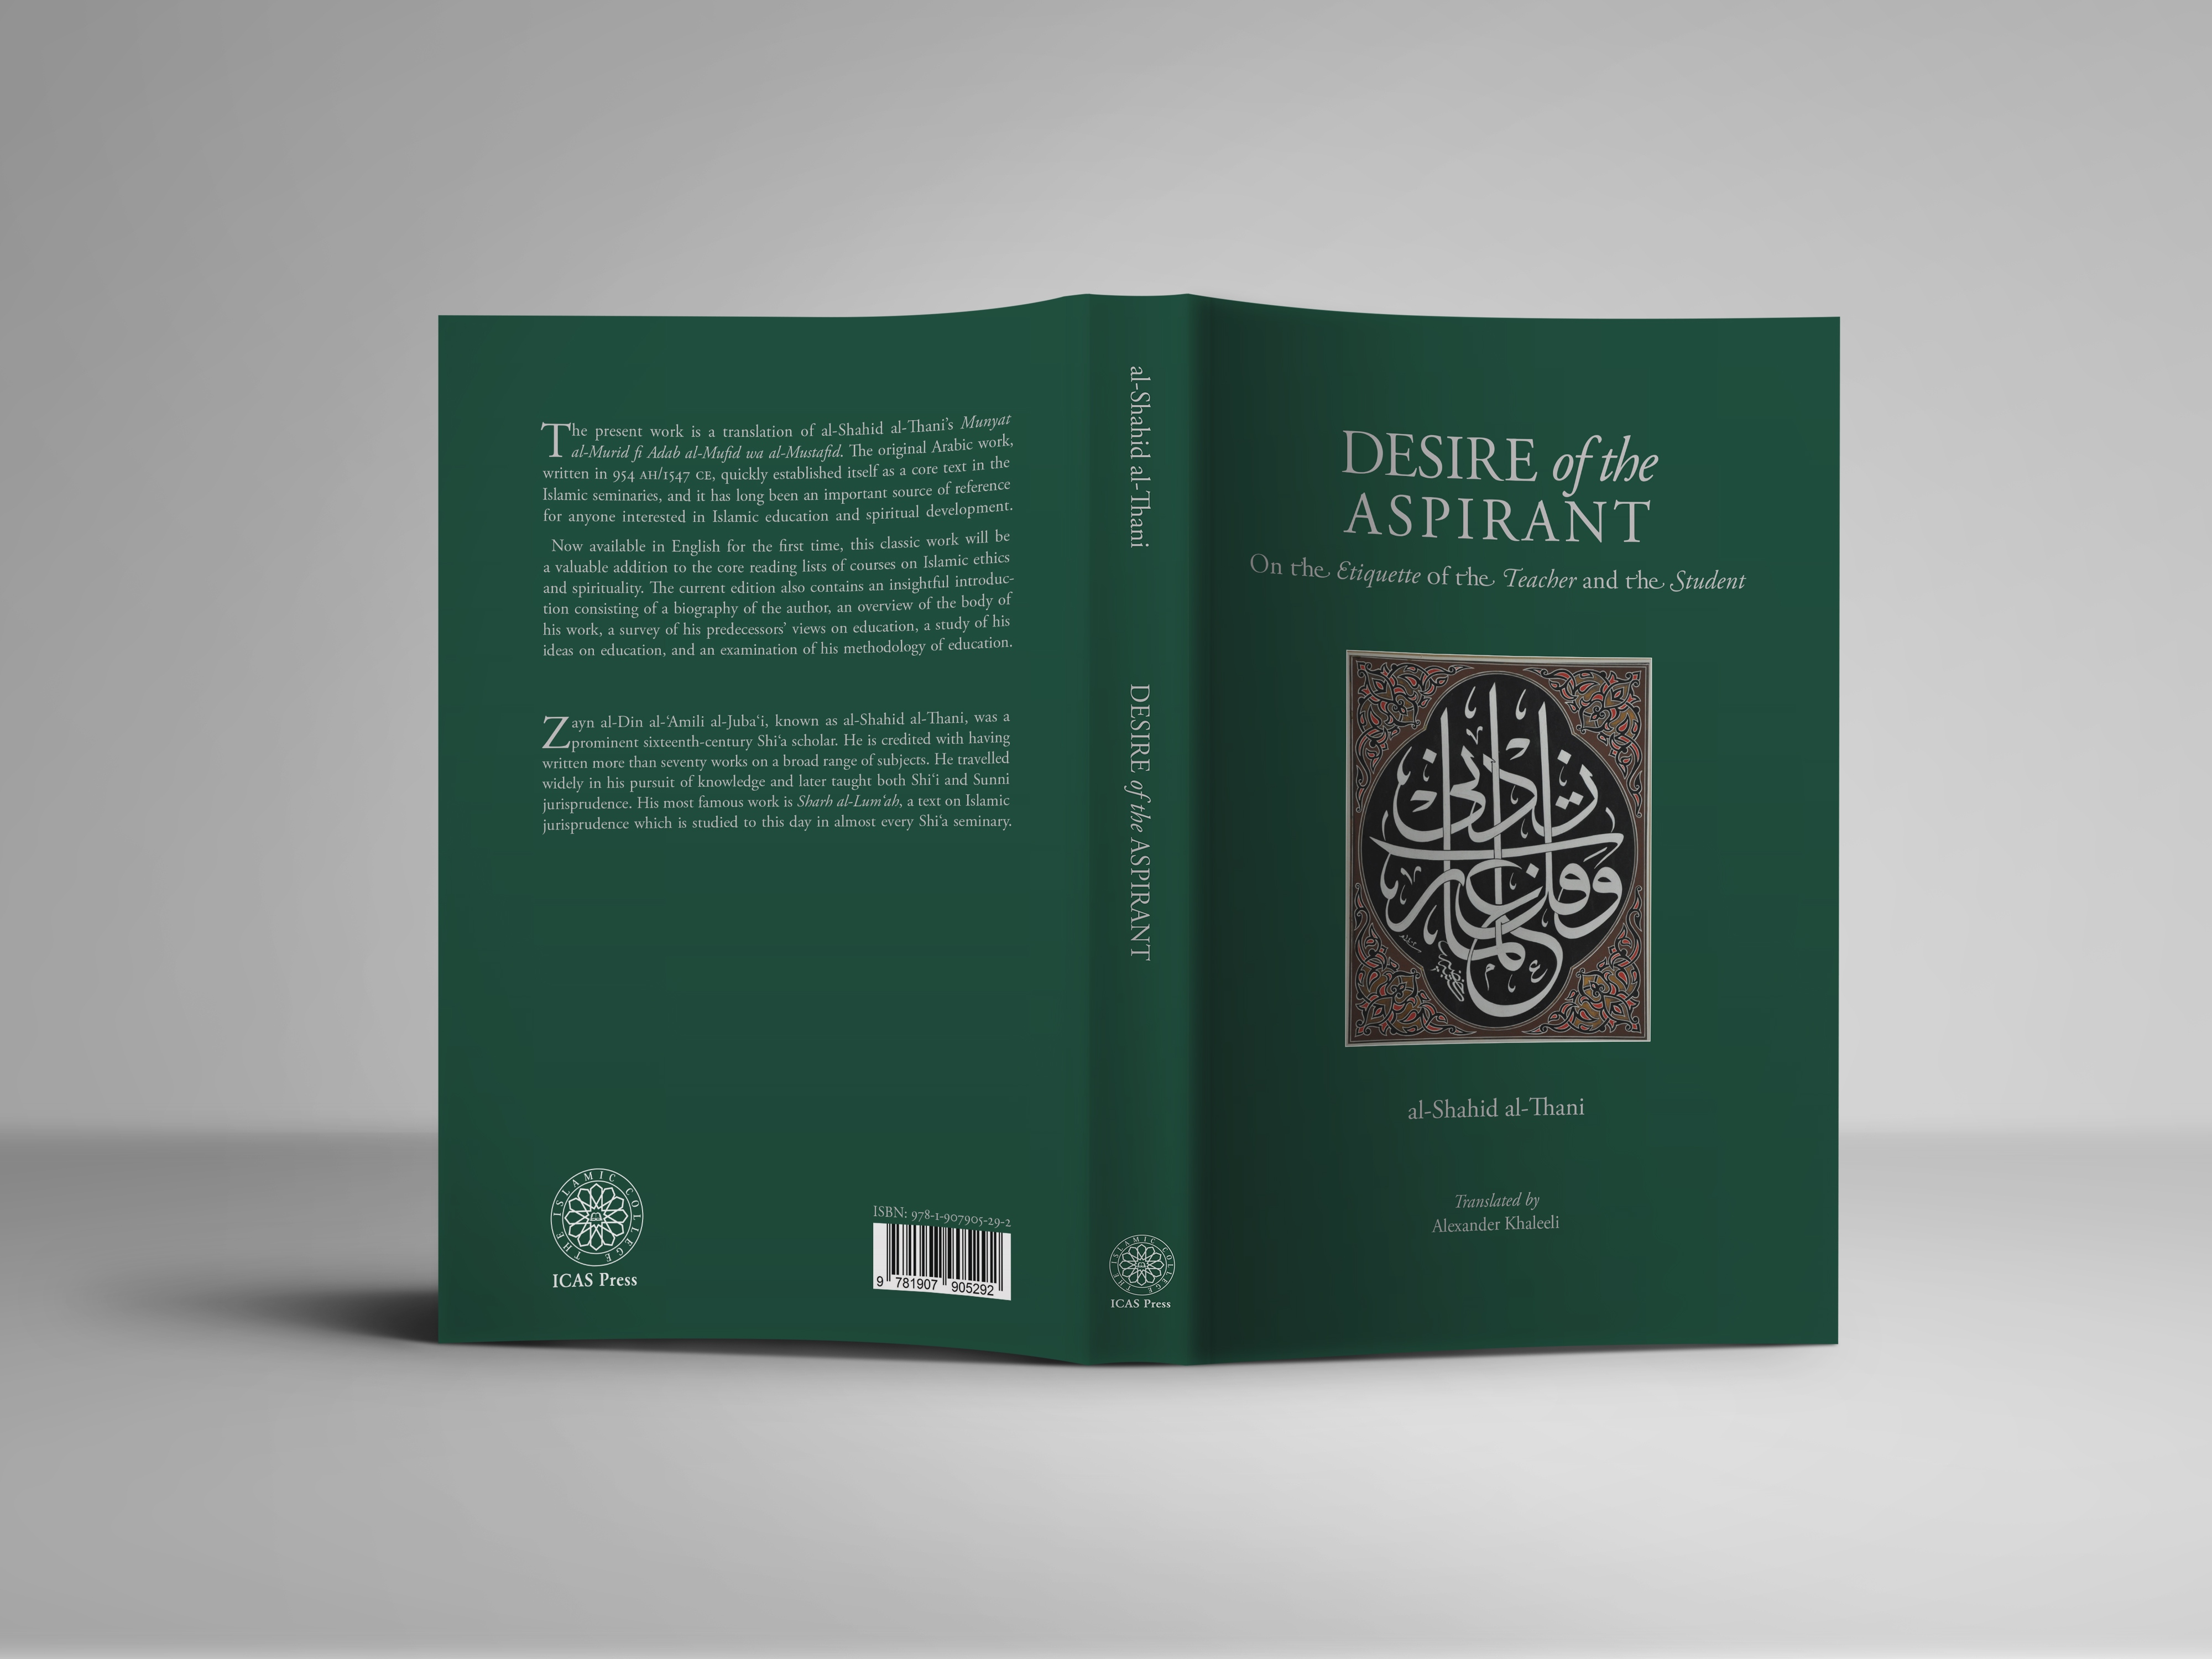 Cover design (front and back view)